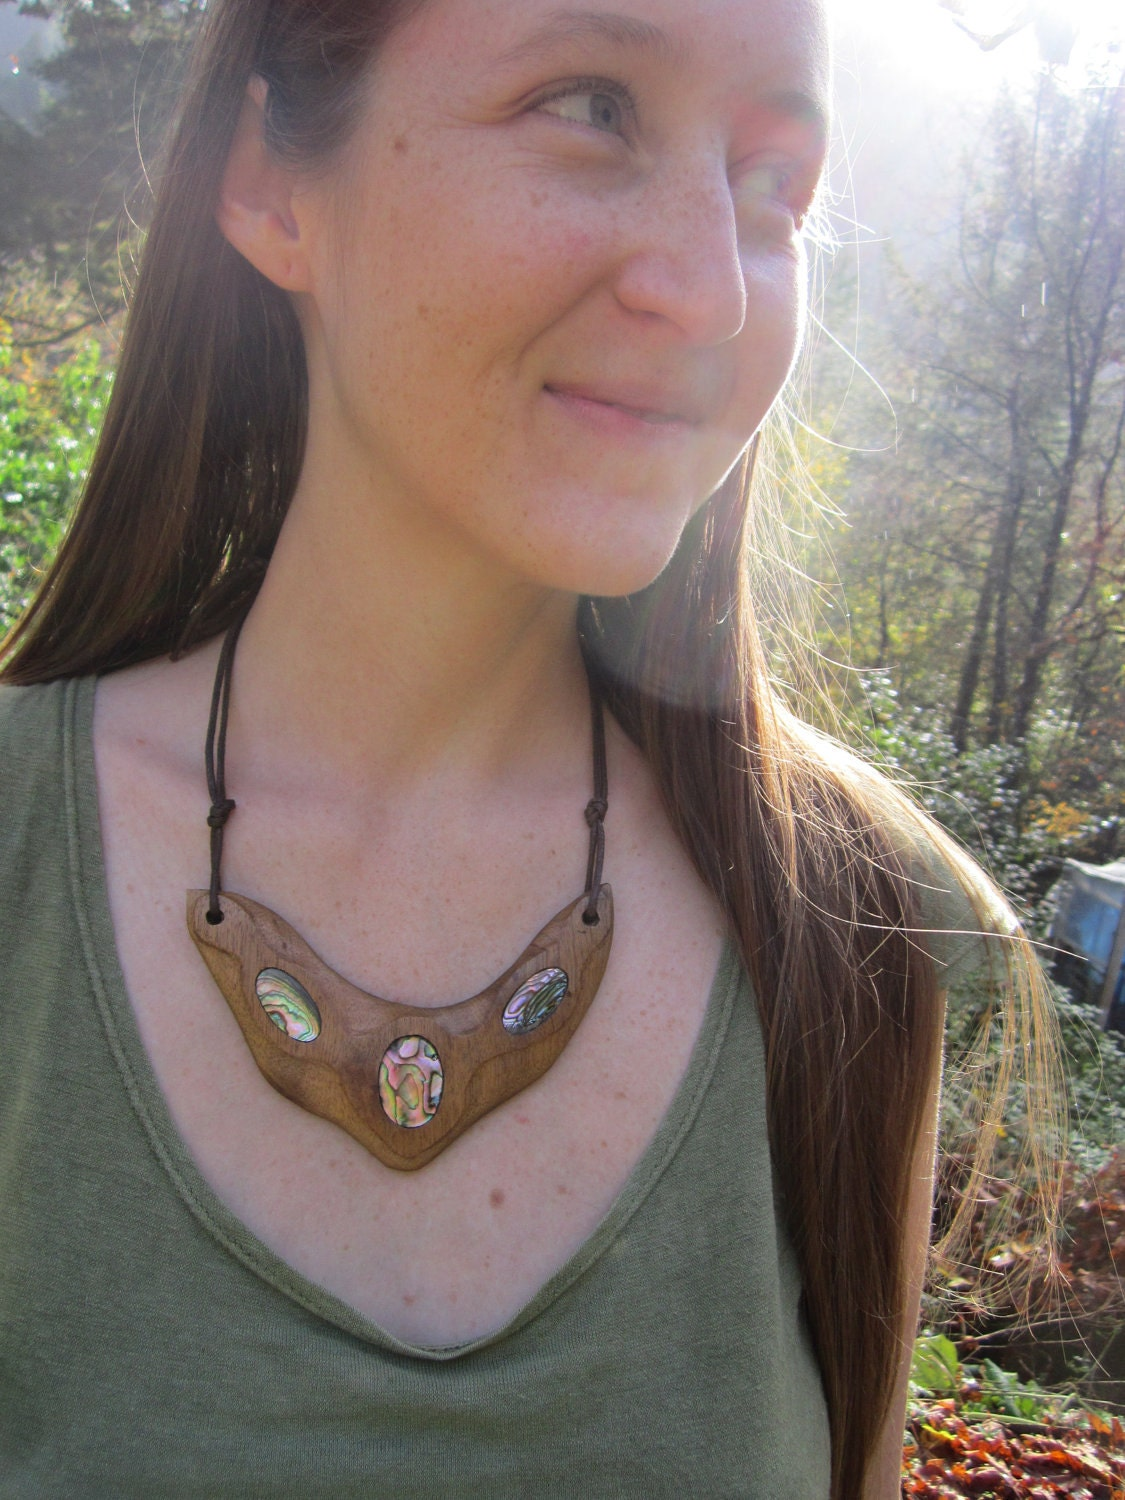 SALE- Wooden Abalone Necklace- Connection- Hand carved Myrtle wood with Abalone Shell